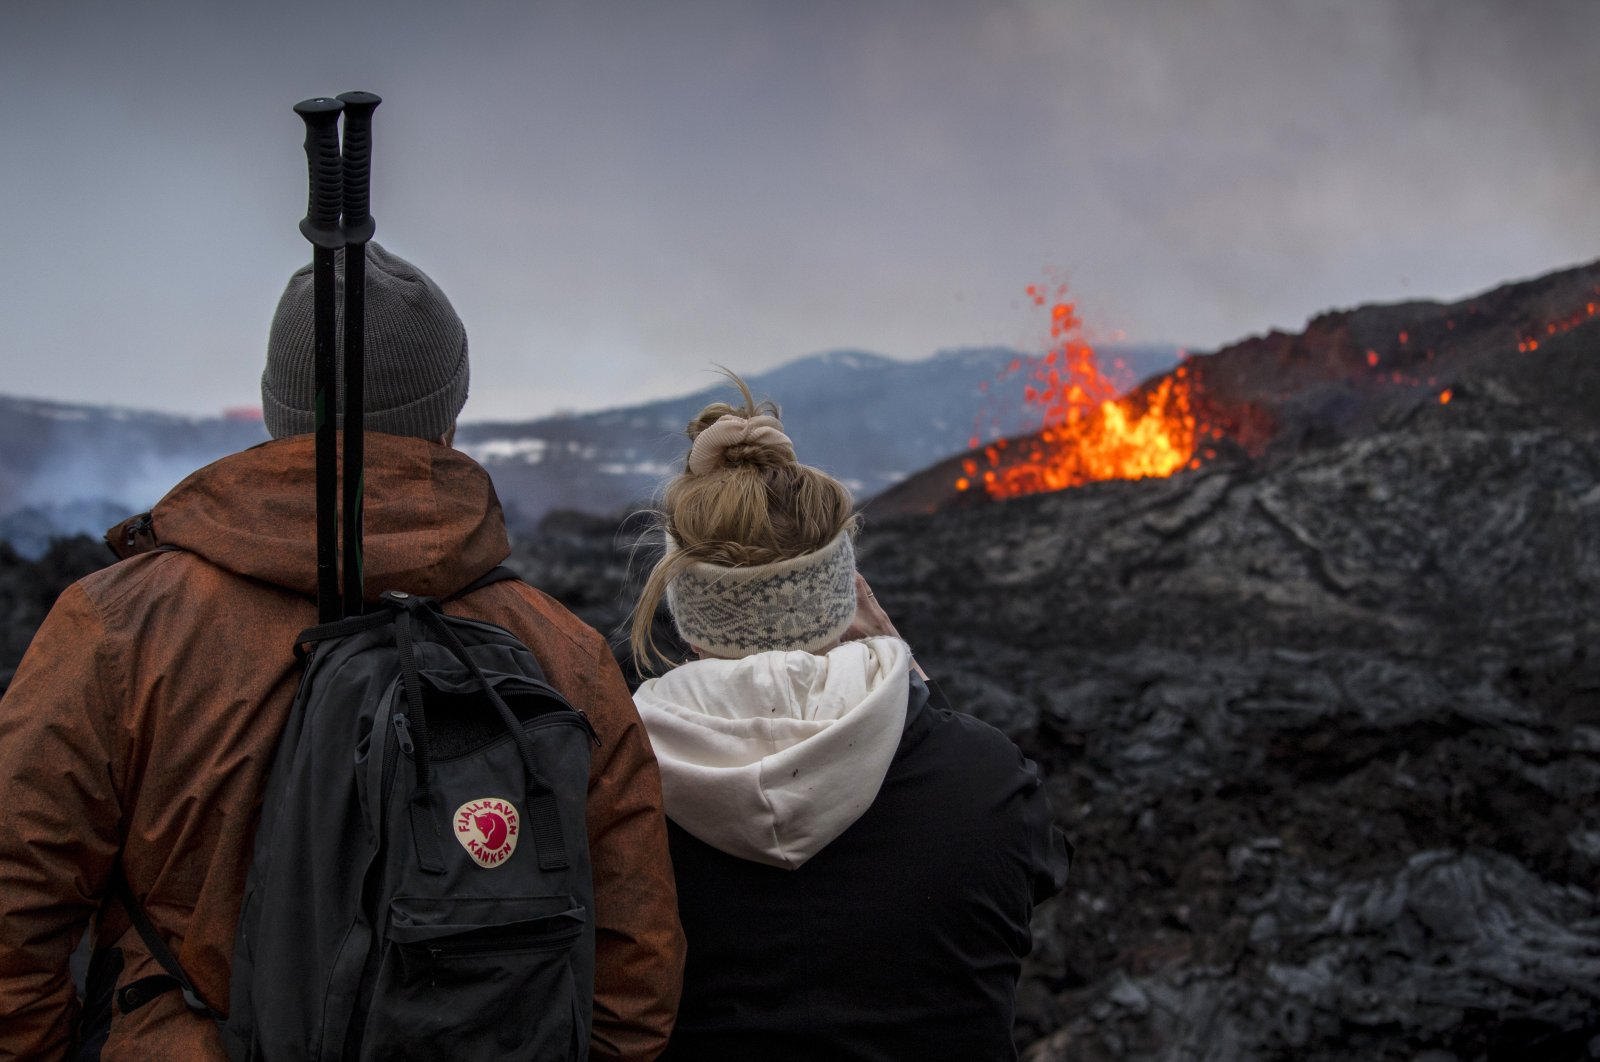 People watch the Lava flows from an eruption of a volcano on the Reykjanes Peninsula in southwestern Iceland on Wednesday, March 31, 2021. (AP Photo)